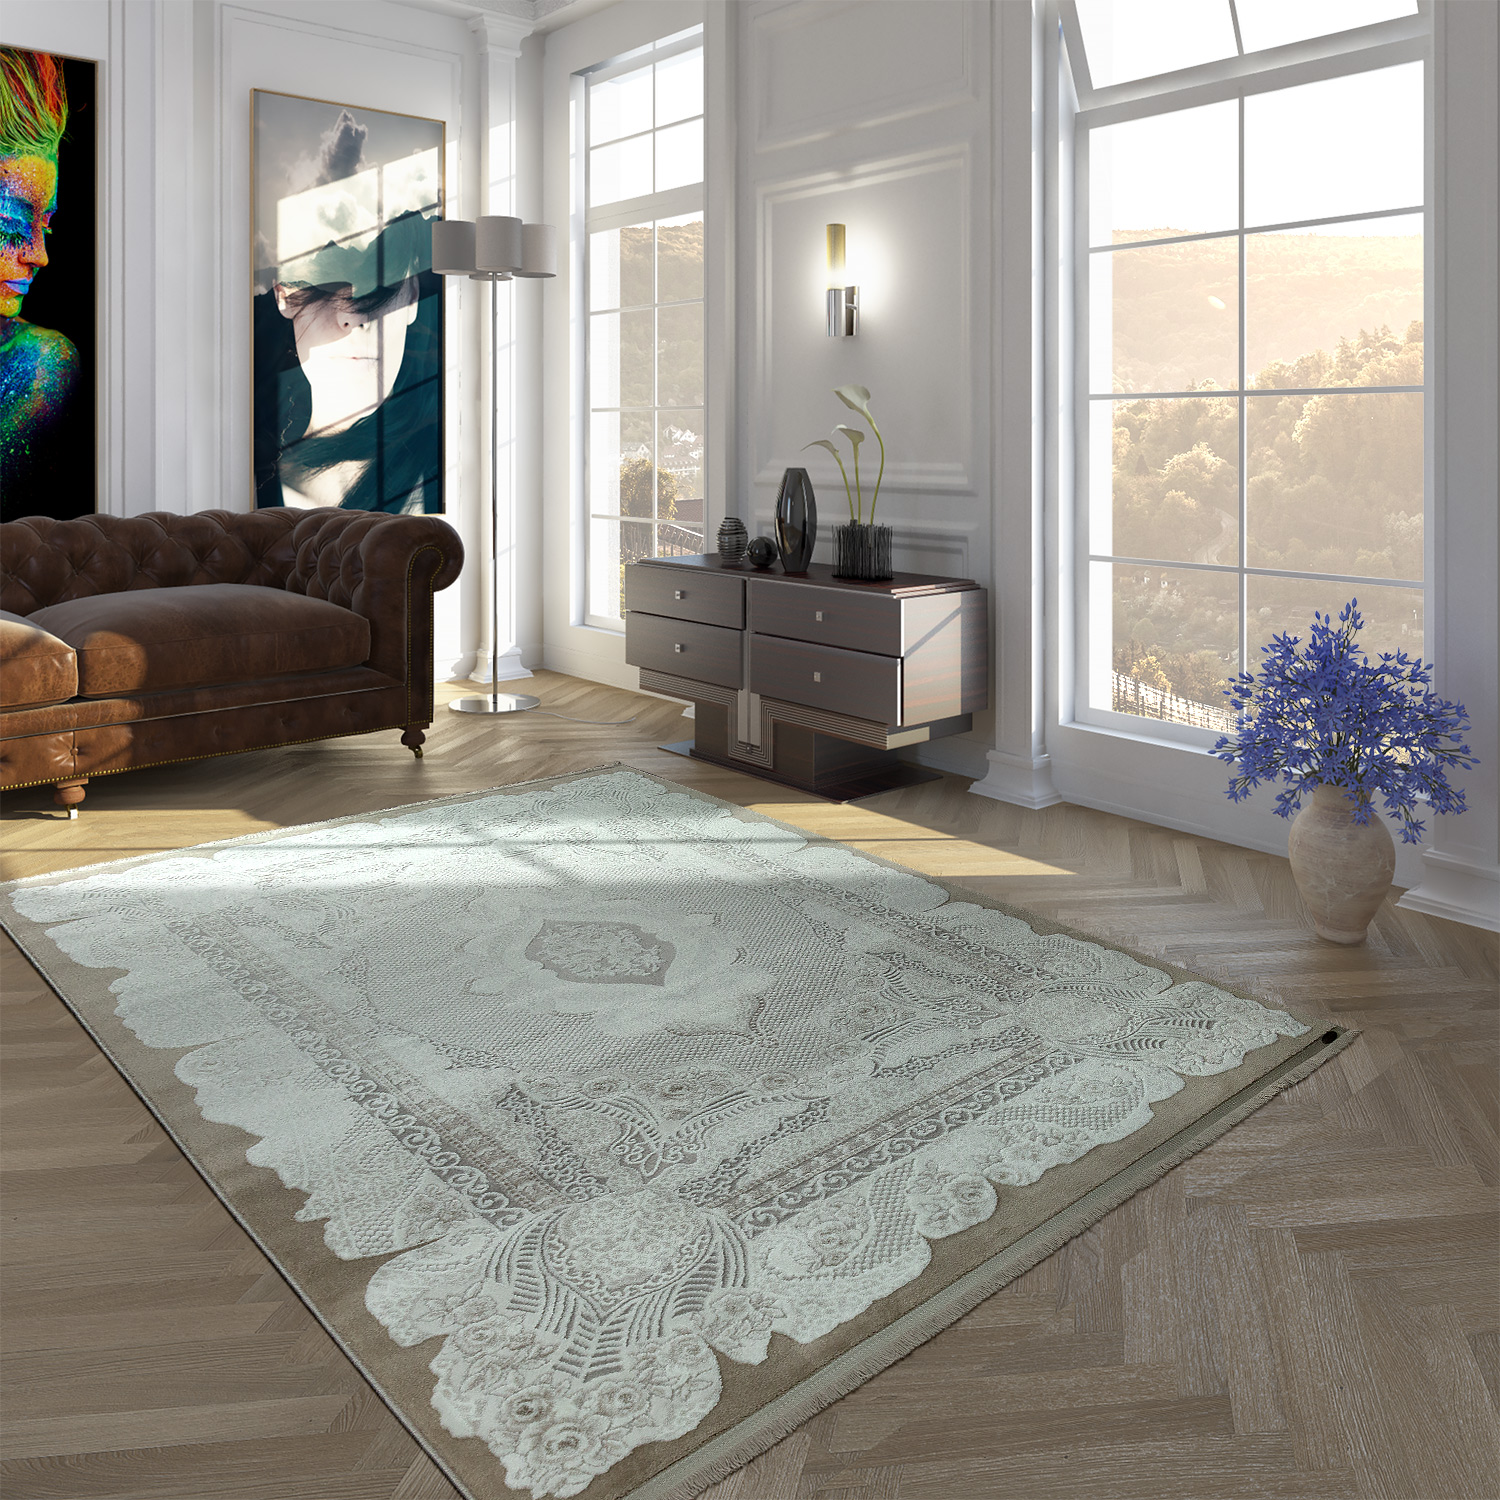 Acrylic Rug Short Pile High Quality Vintage Look Orient Look Fringes